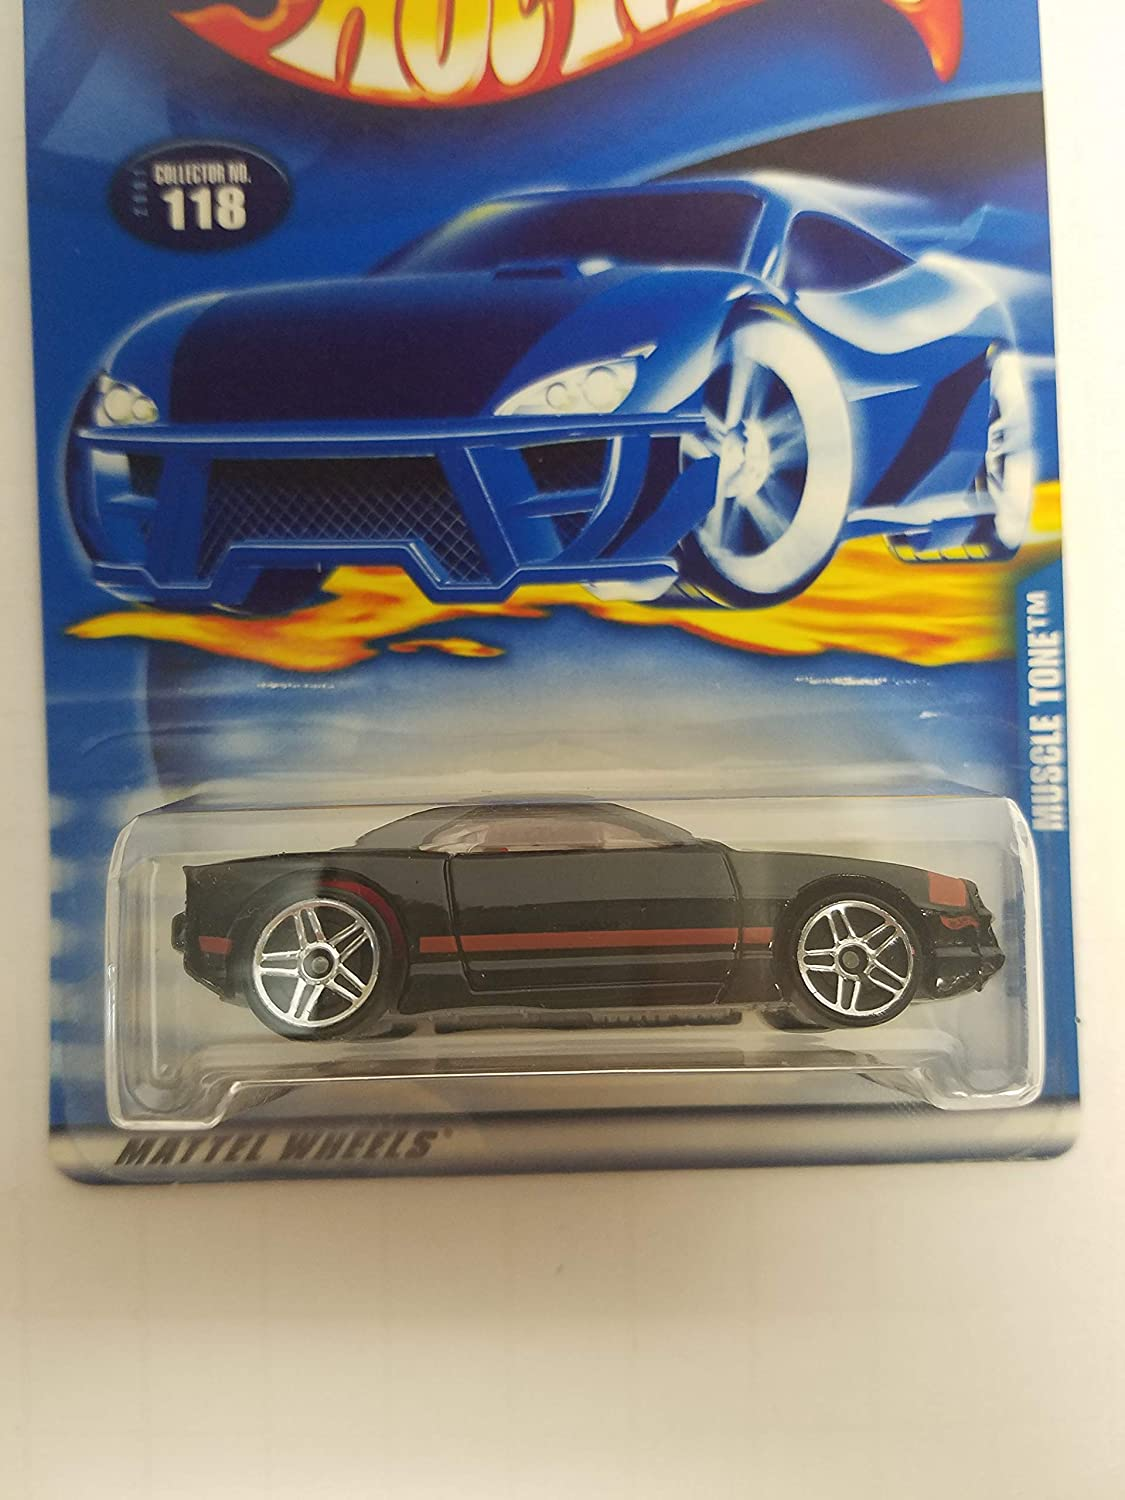 Muscle Tone Hot Wheels 2001 diecast 1/64 scale car No. 118